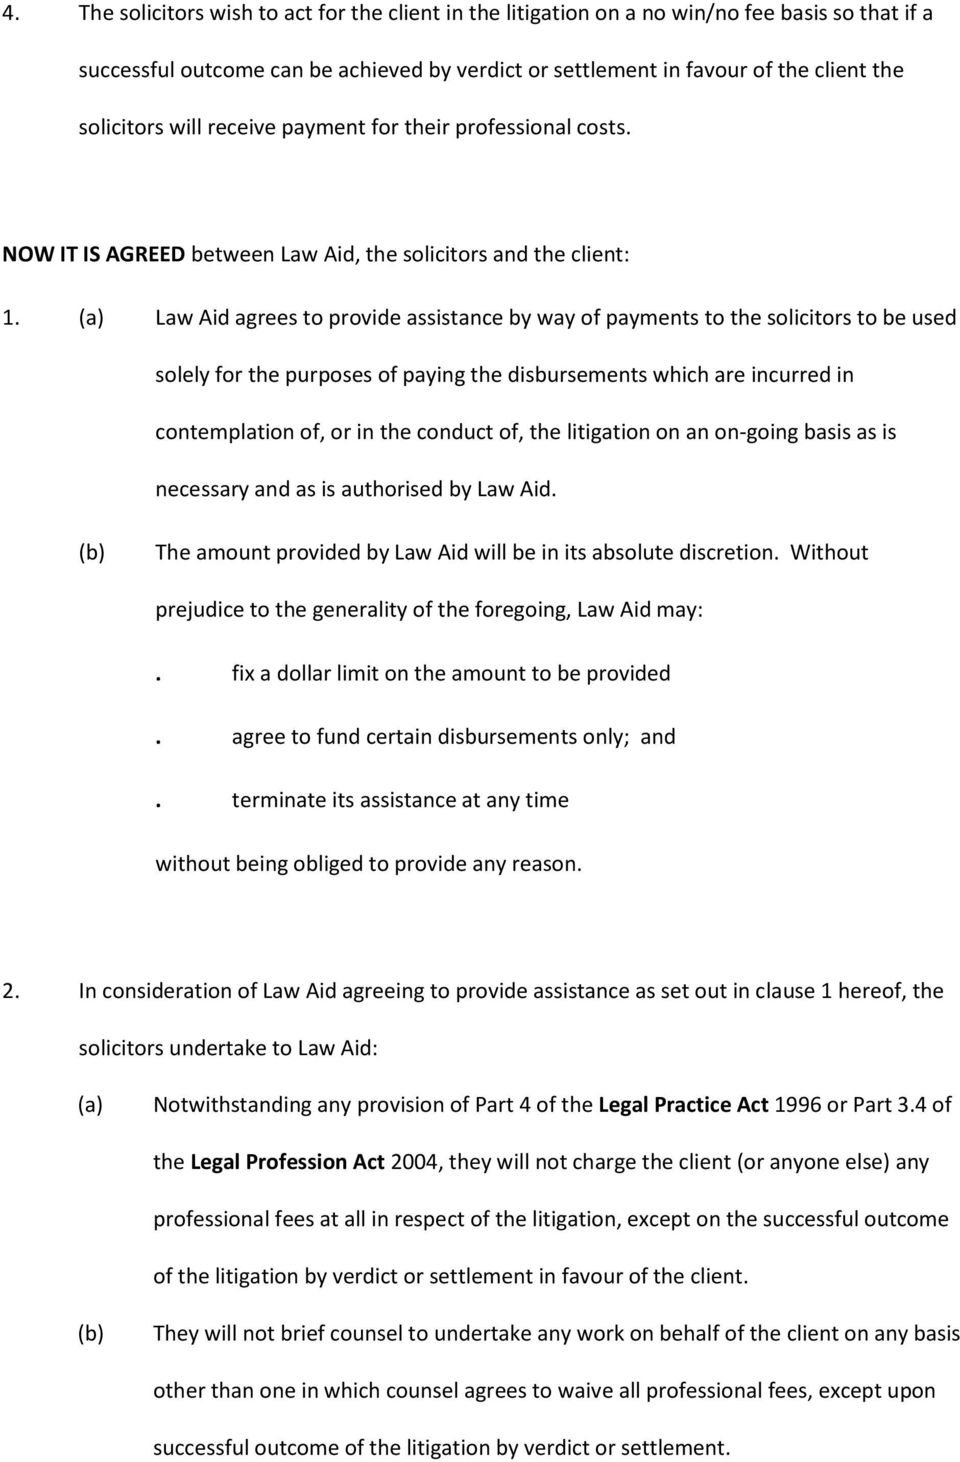 Law Aid agrees to provide assistance by way of payments to the solicitors to be used solely for the purposes of paying the disbursements which are incurred in contemplation of, or in the conduct of,